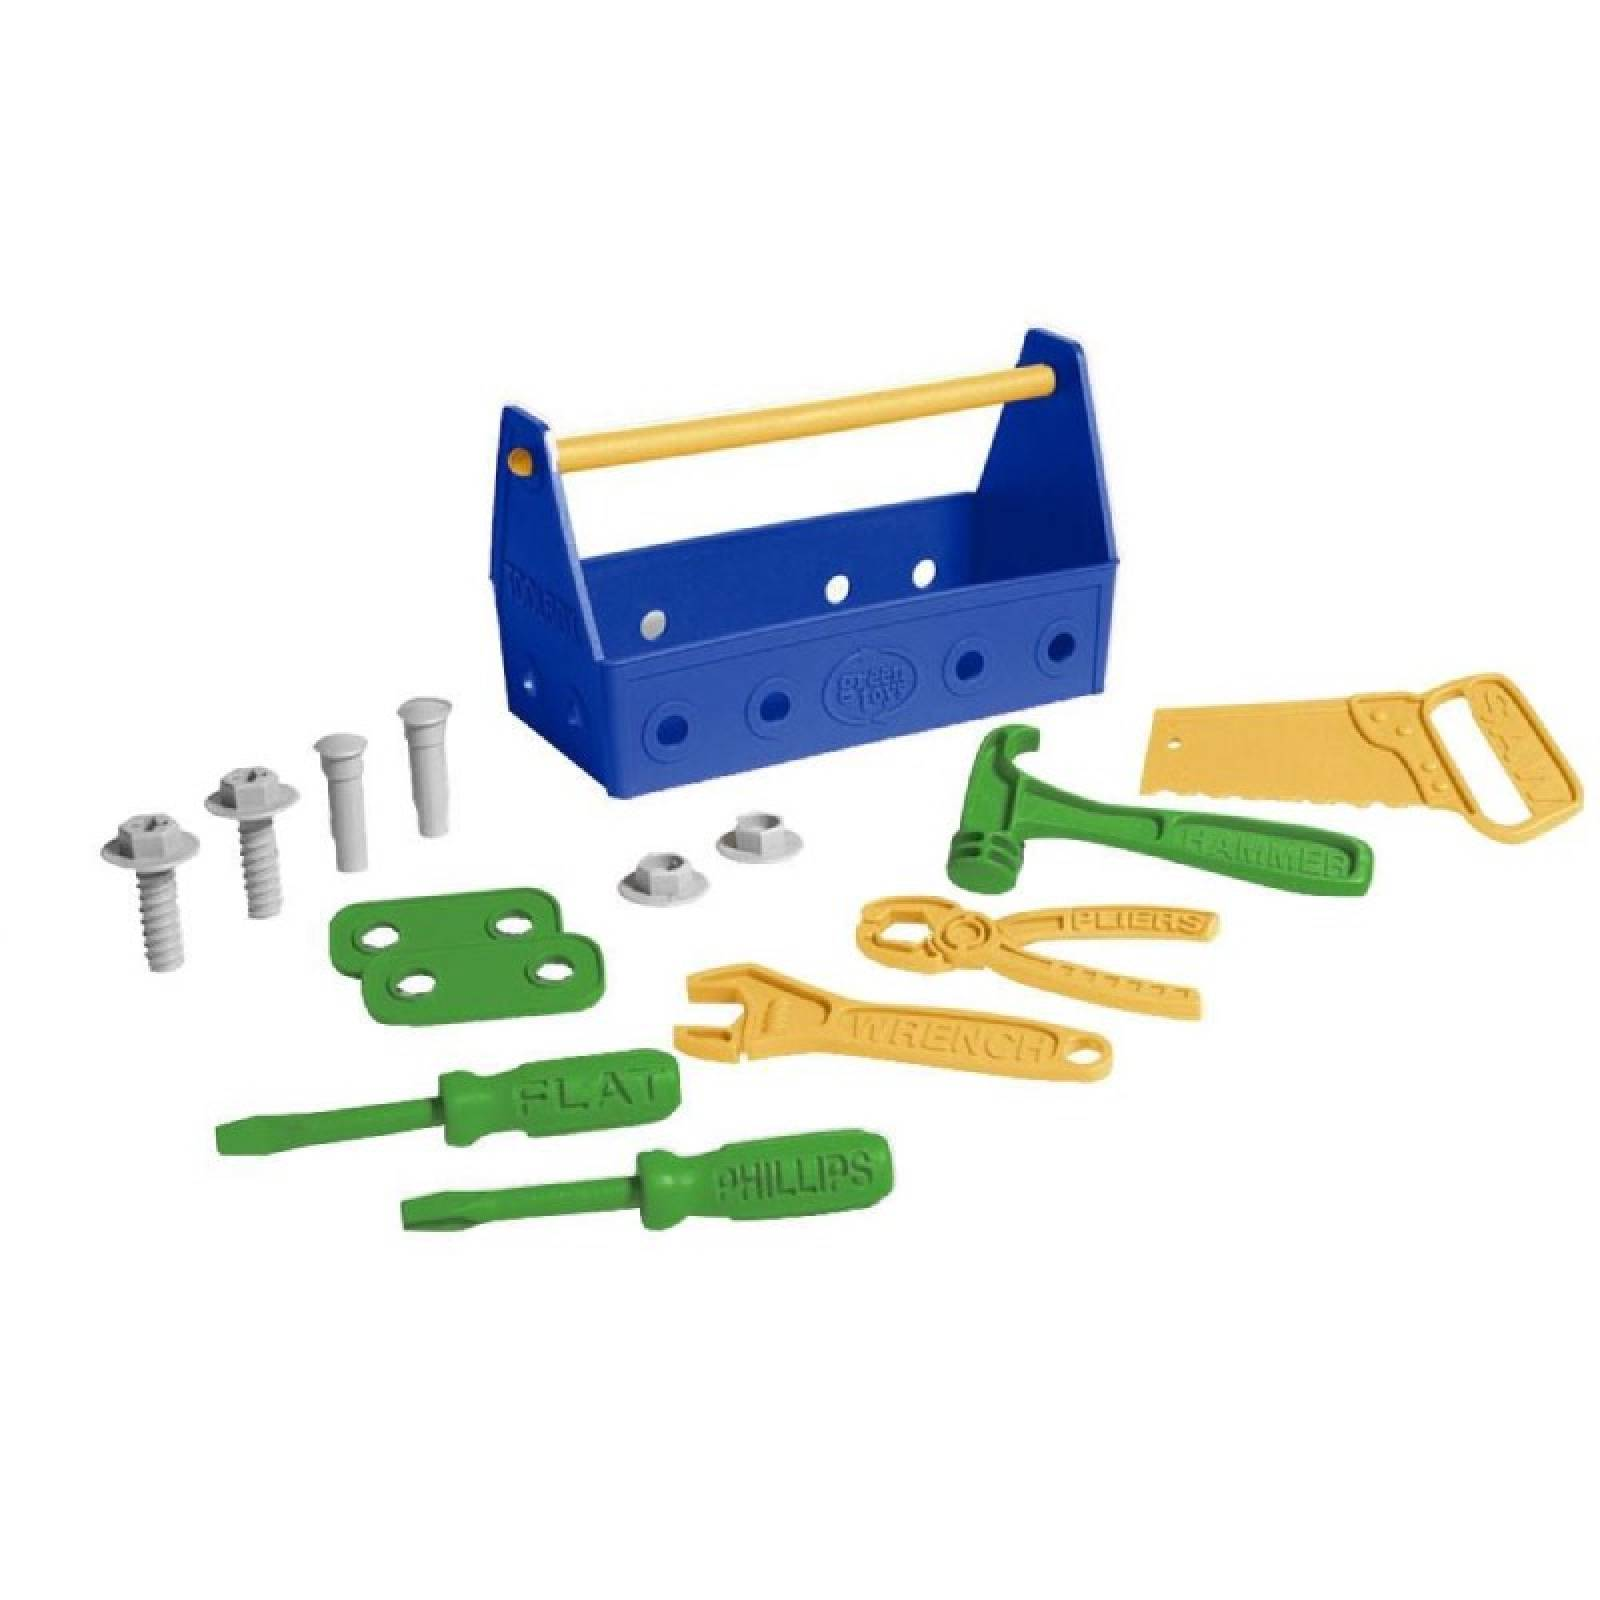 Blue Tool Kit By Green Toys 2+ thumbnails